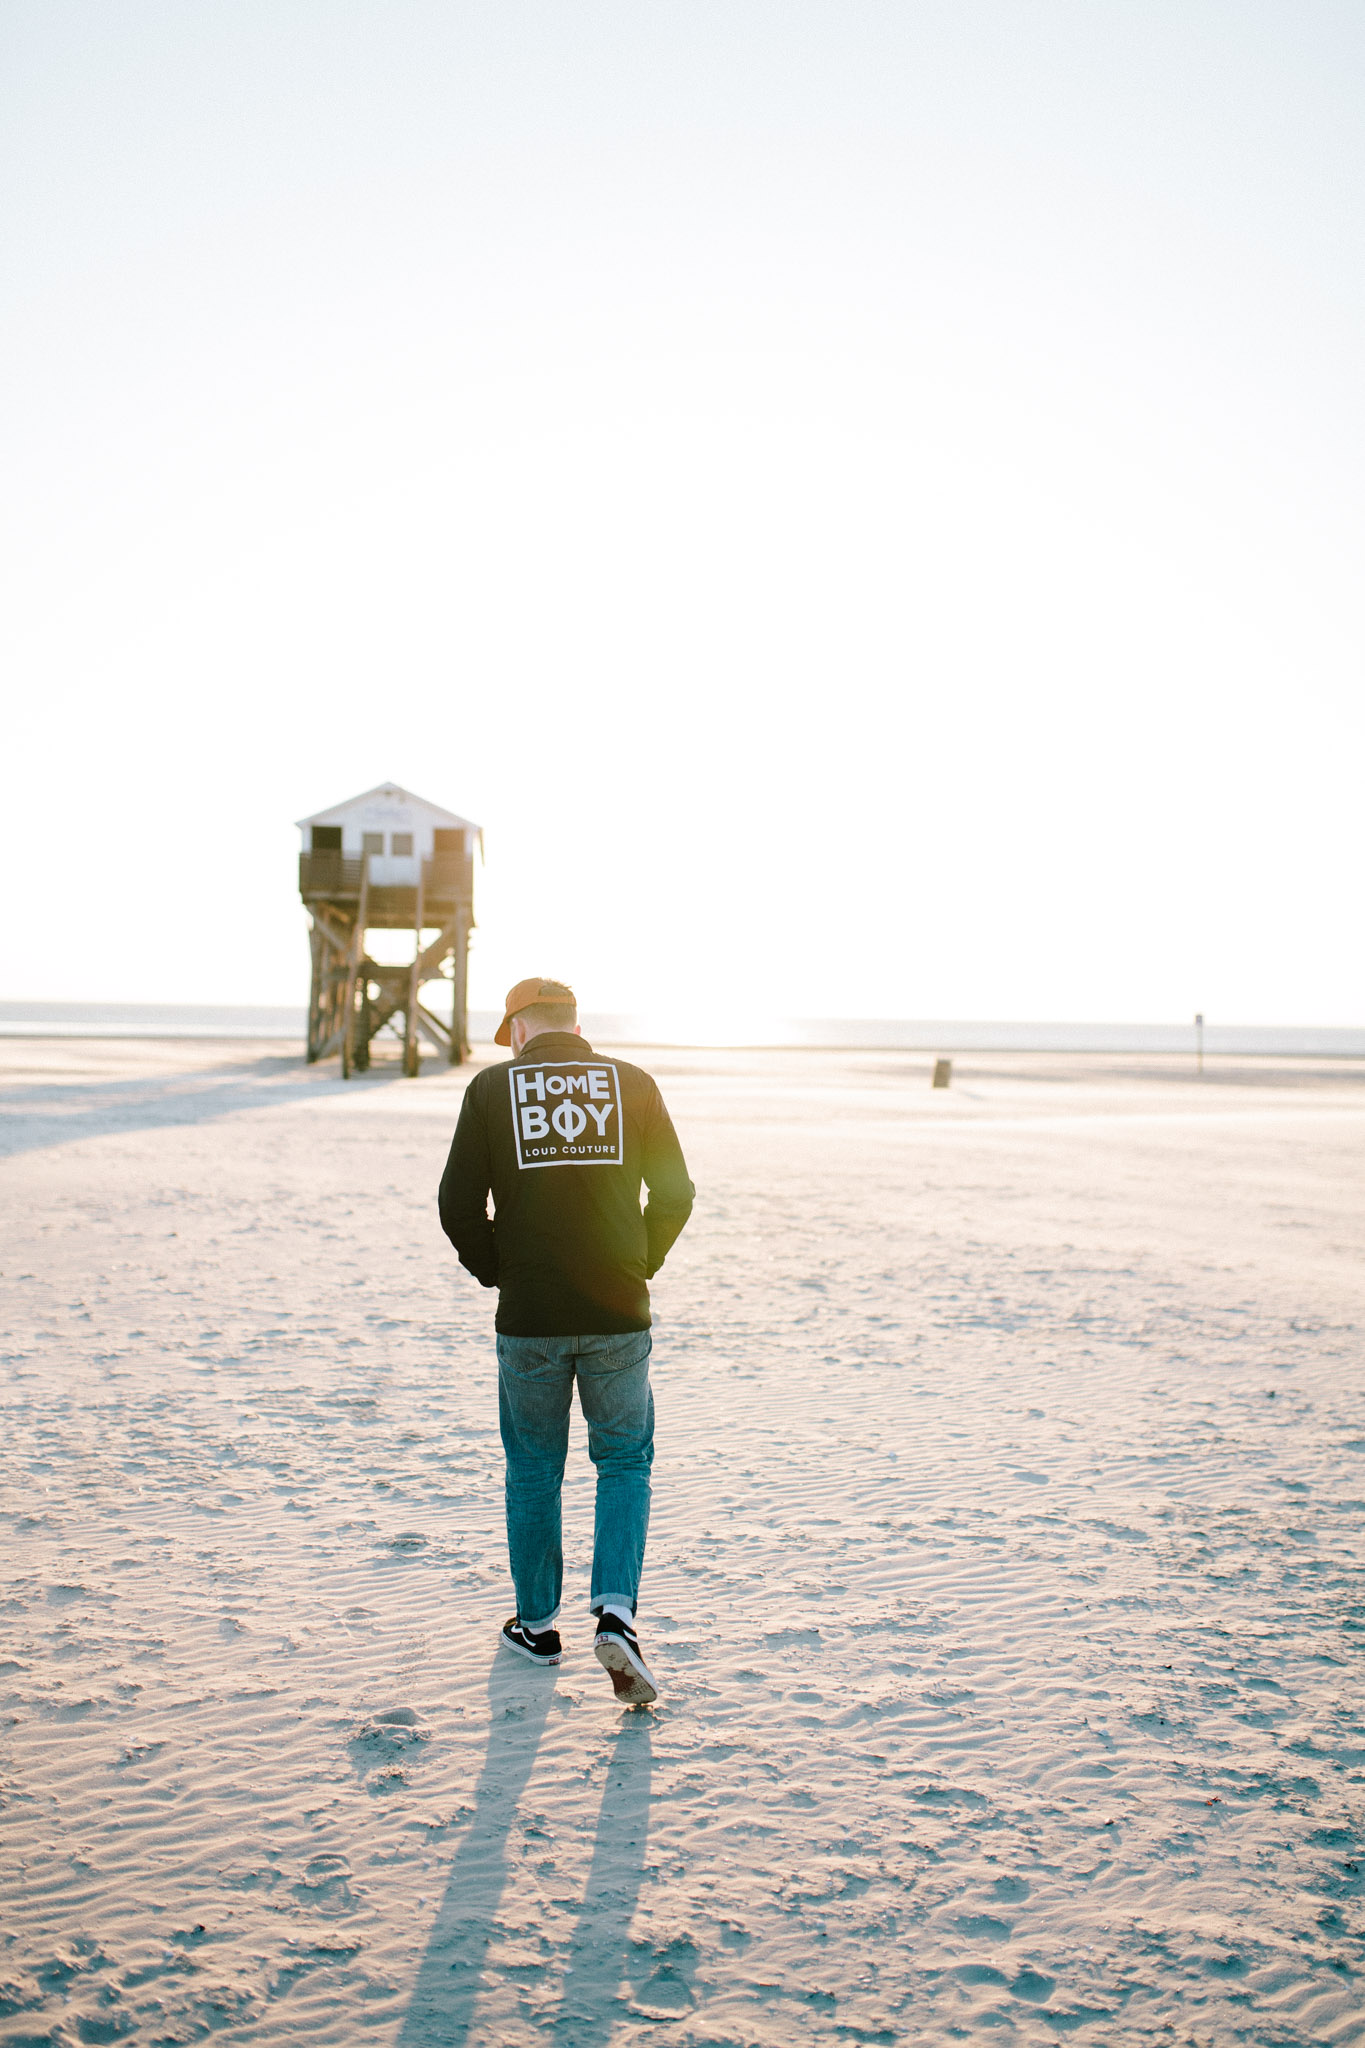 Sankt-Peter-Ording-Engagement-Pia-Anna-Christian-Wedding-Photography-KT-39.jpg